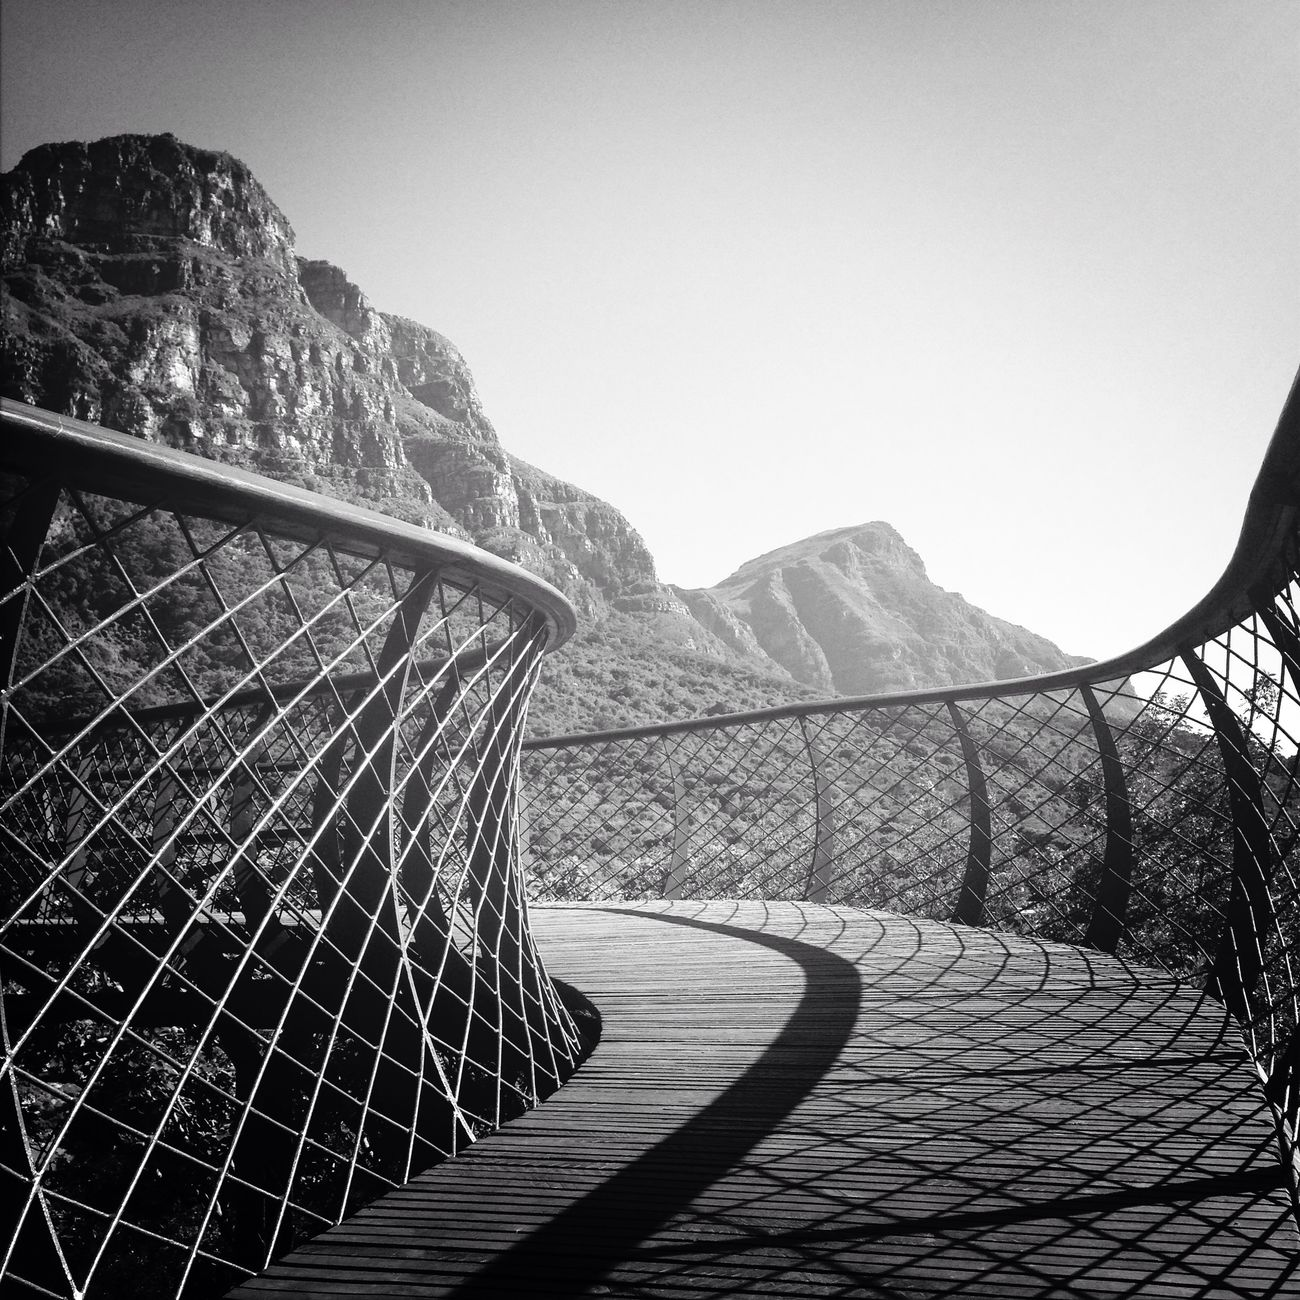 I had a beautiful run this morning and discovered the cool new Boomslang CanopyWalkway at Kirstenbosch Botanical Gardens